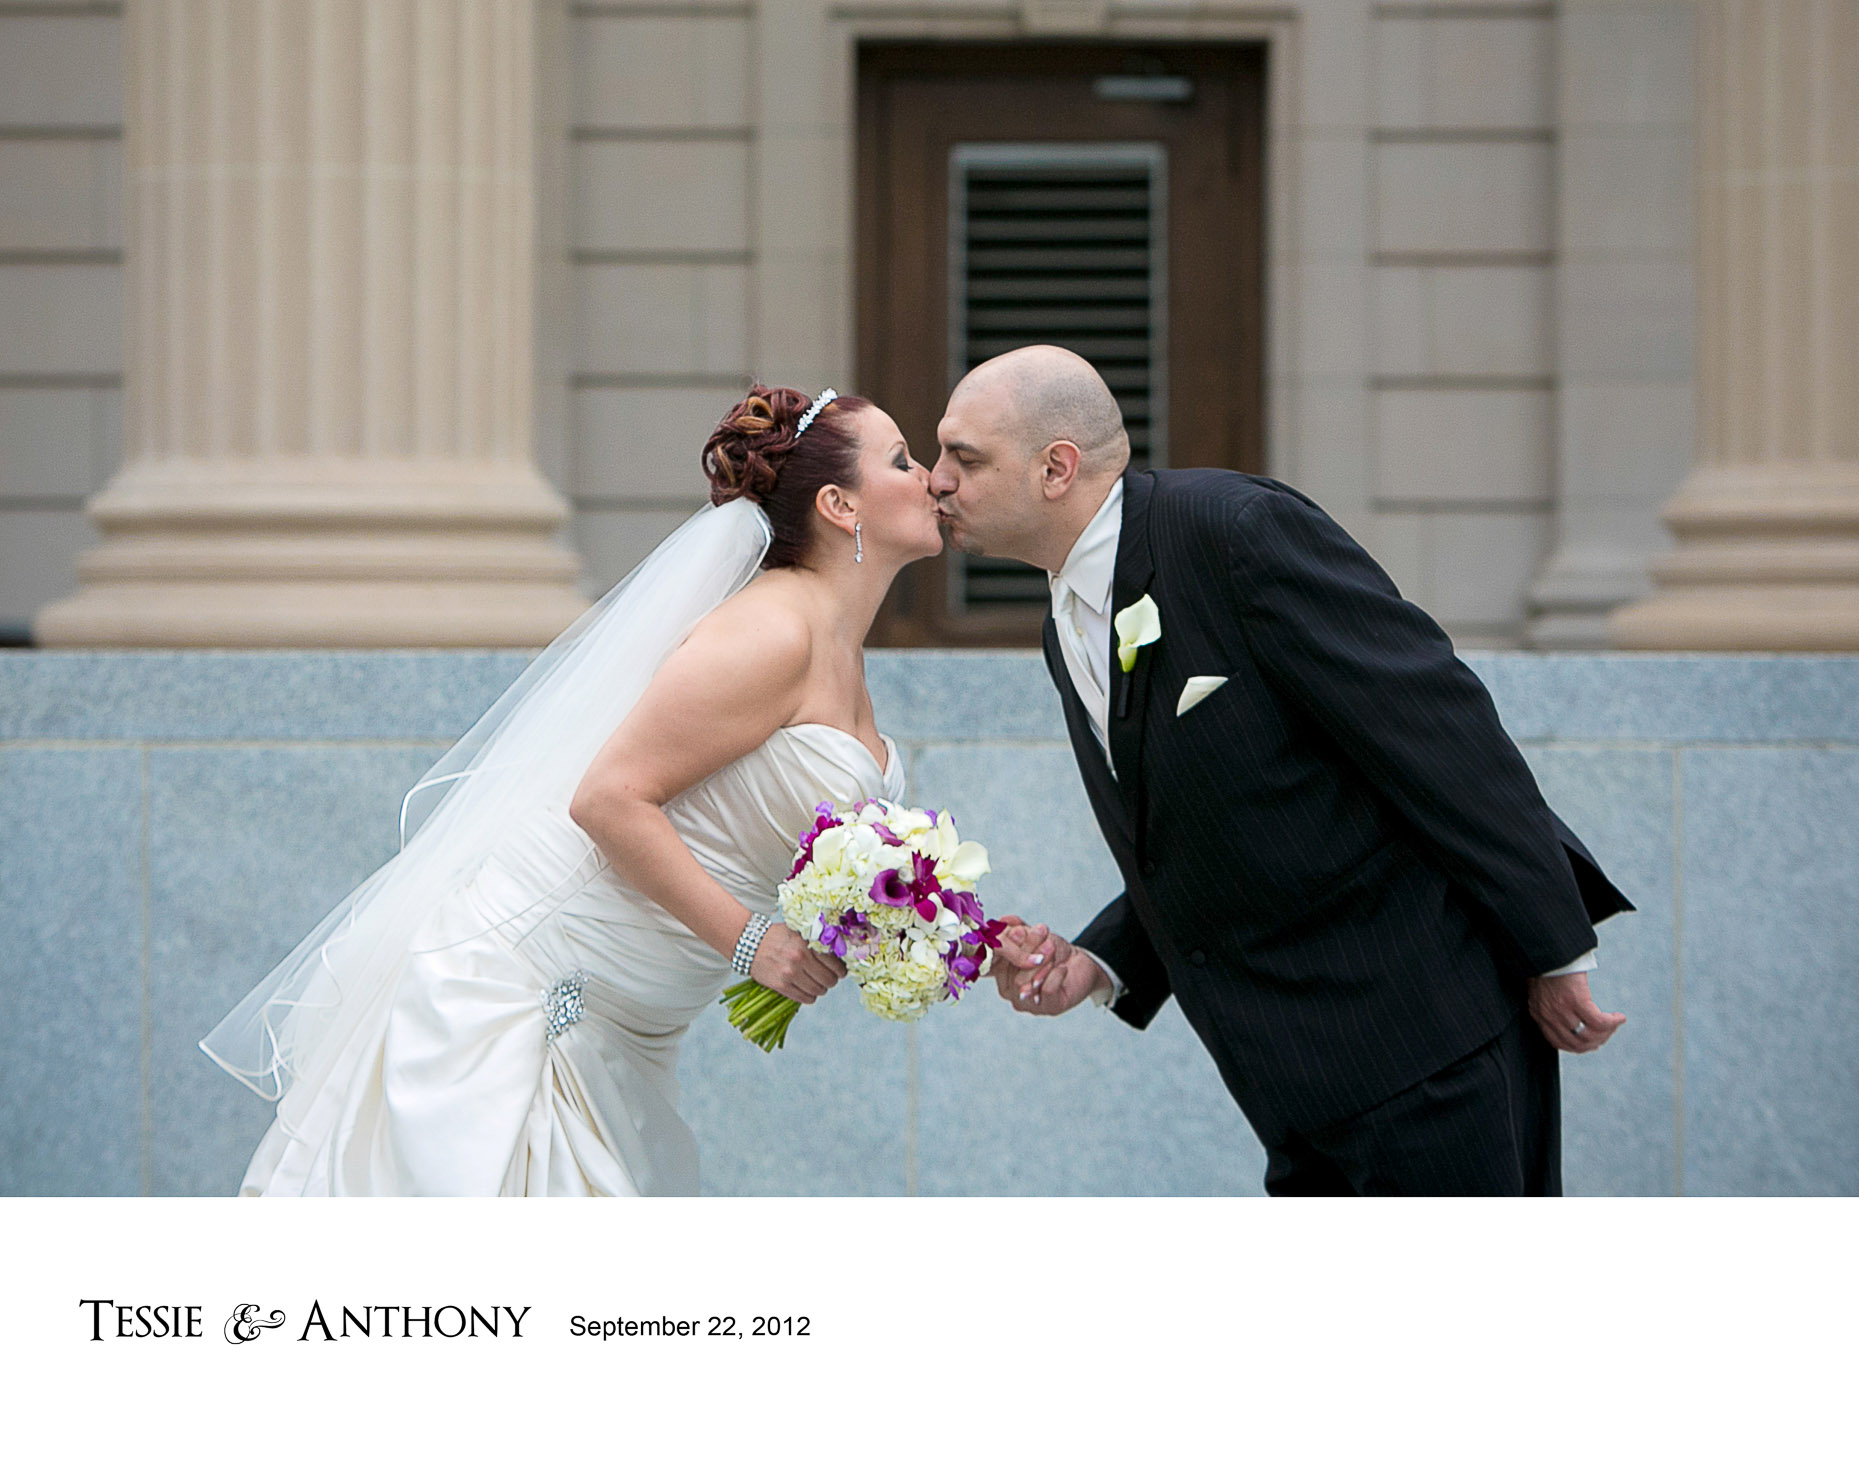 wedding-albums-tessie-anthony-02.jpg